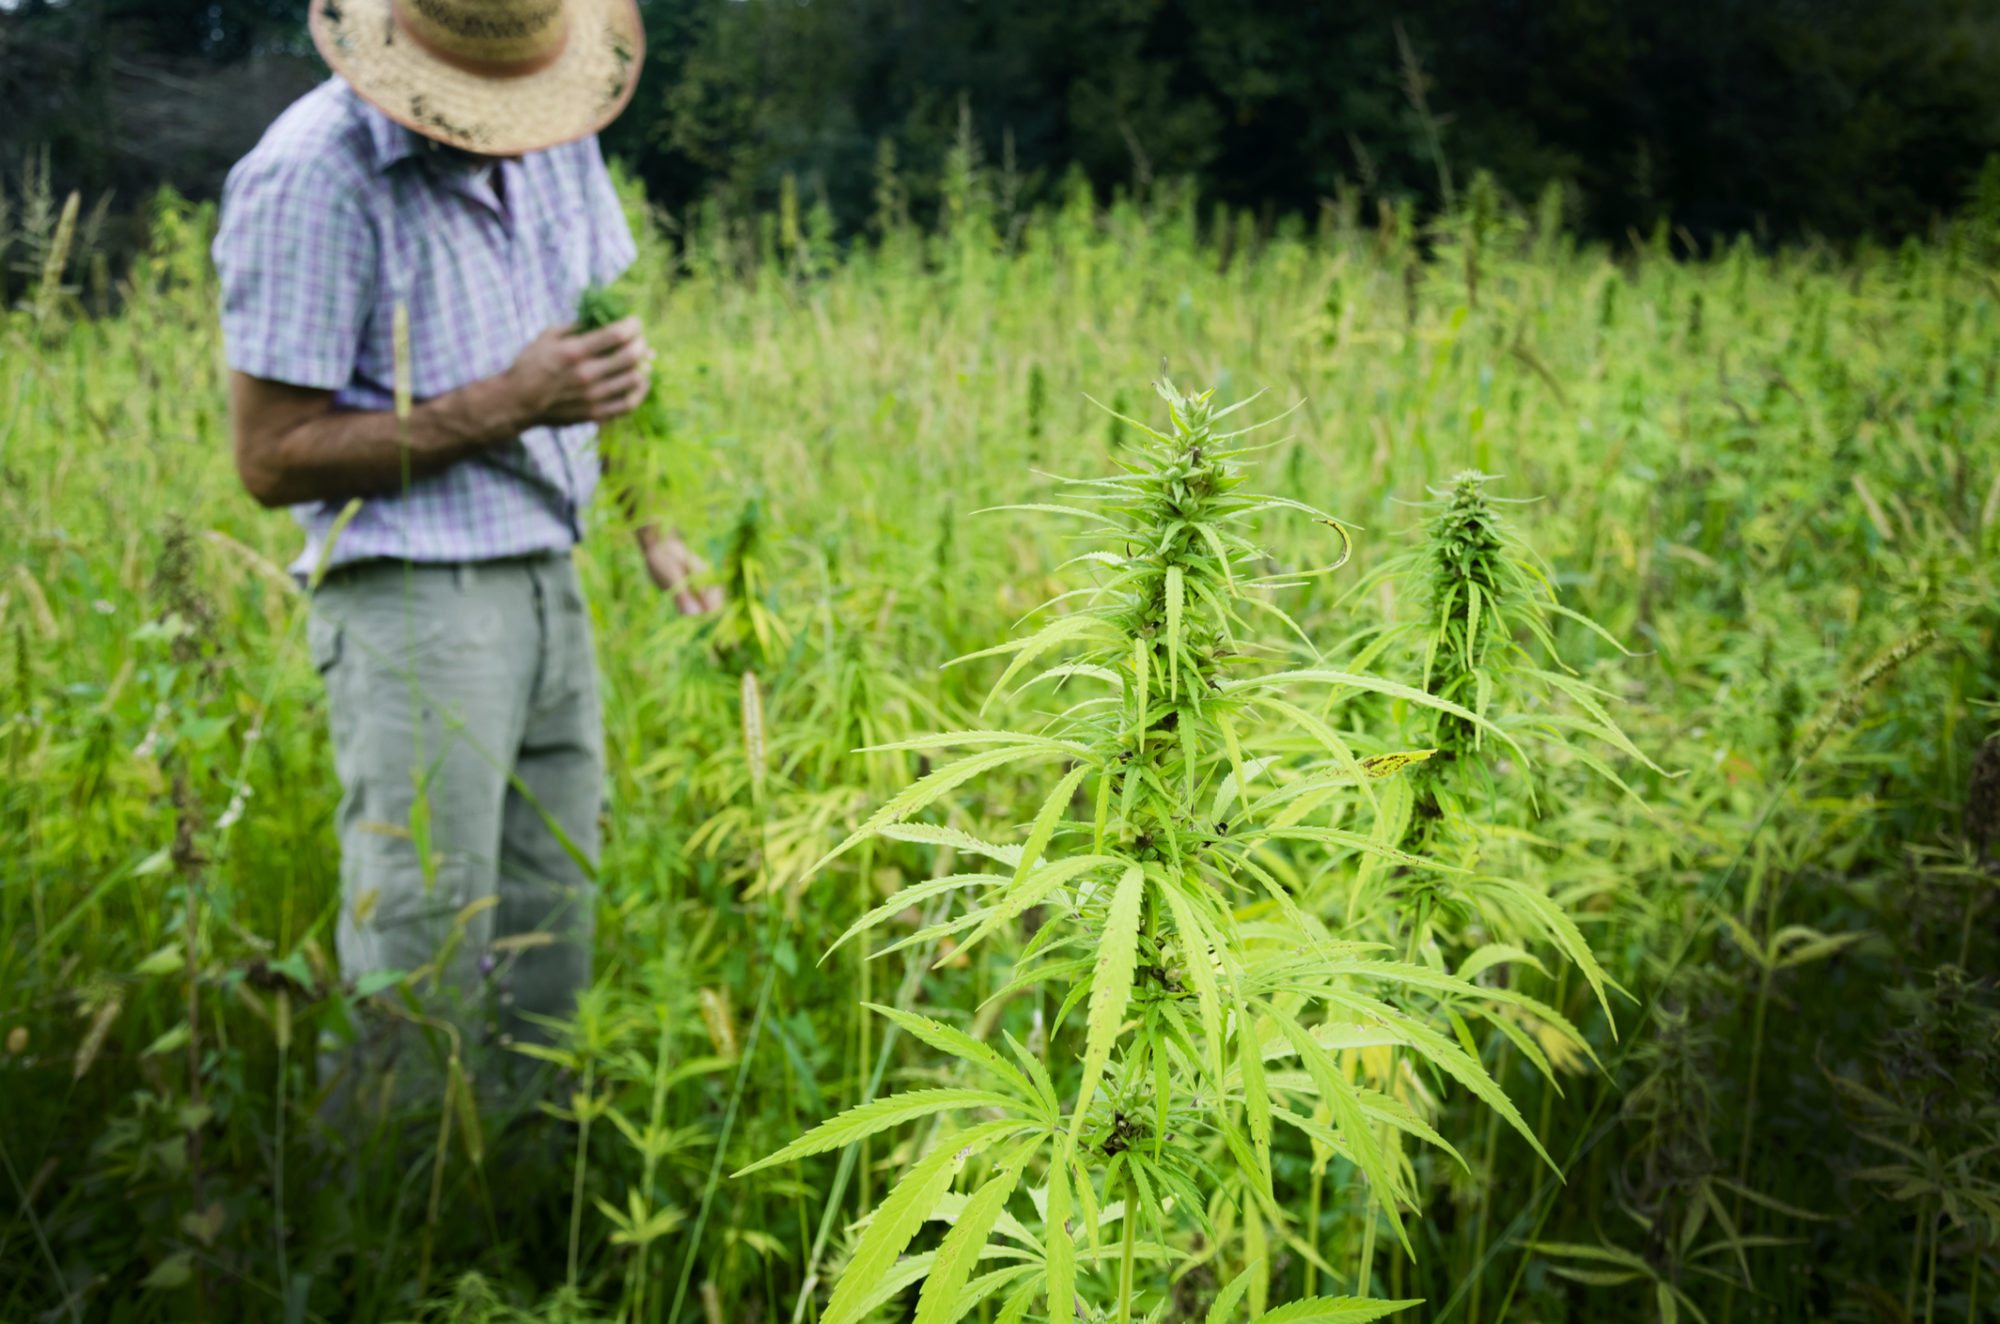 industrial hemp should be legalized in the united states For this reason, cbd products that are extracted from industrial hemp are 100% federally legal in the united states this is provided that the plant material or final product was imported rather than grown here, as domestic cultivation of industrial hemp is still legally questionable.